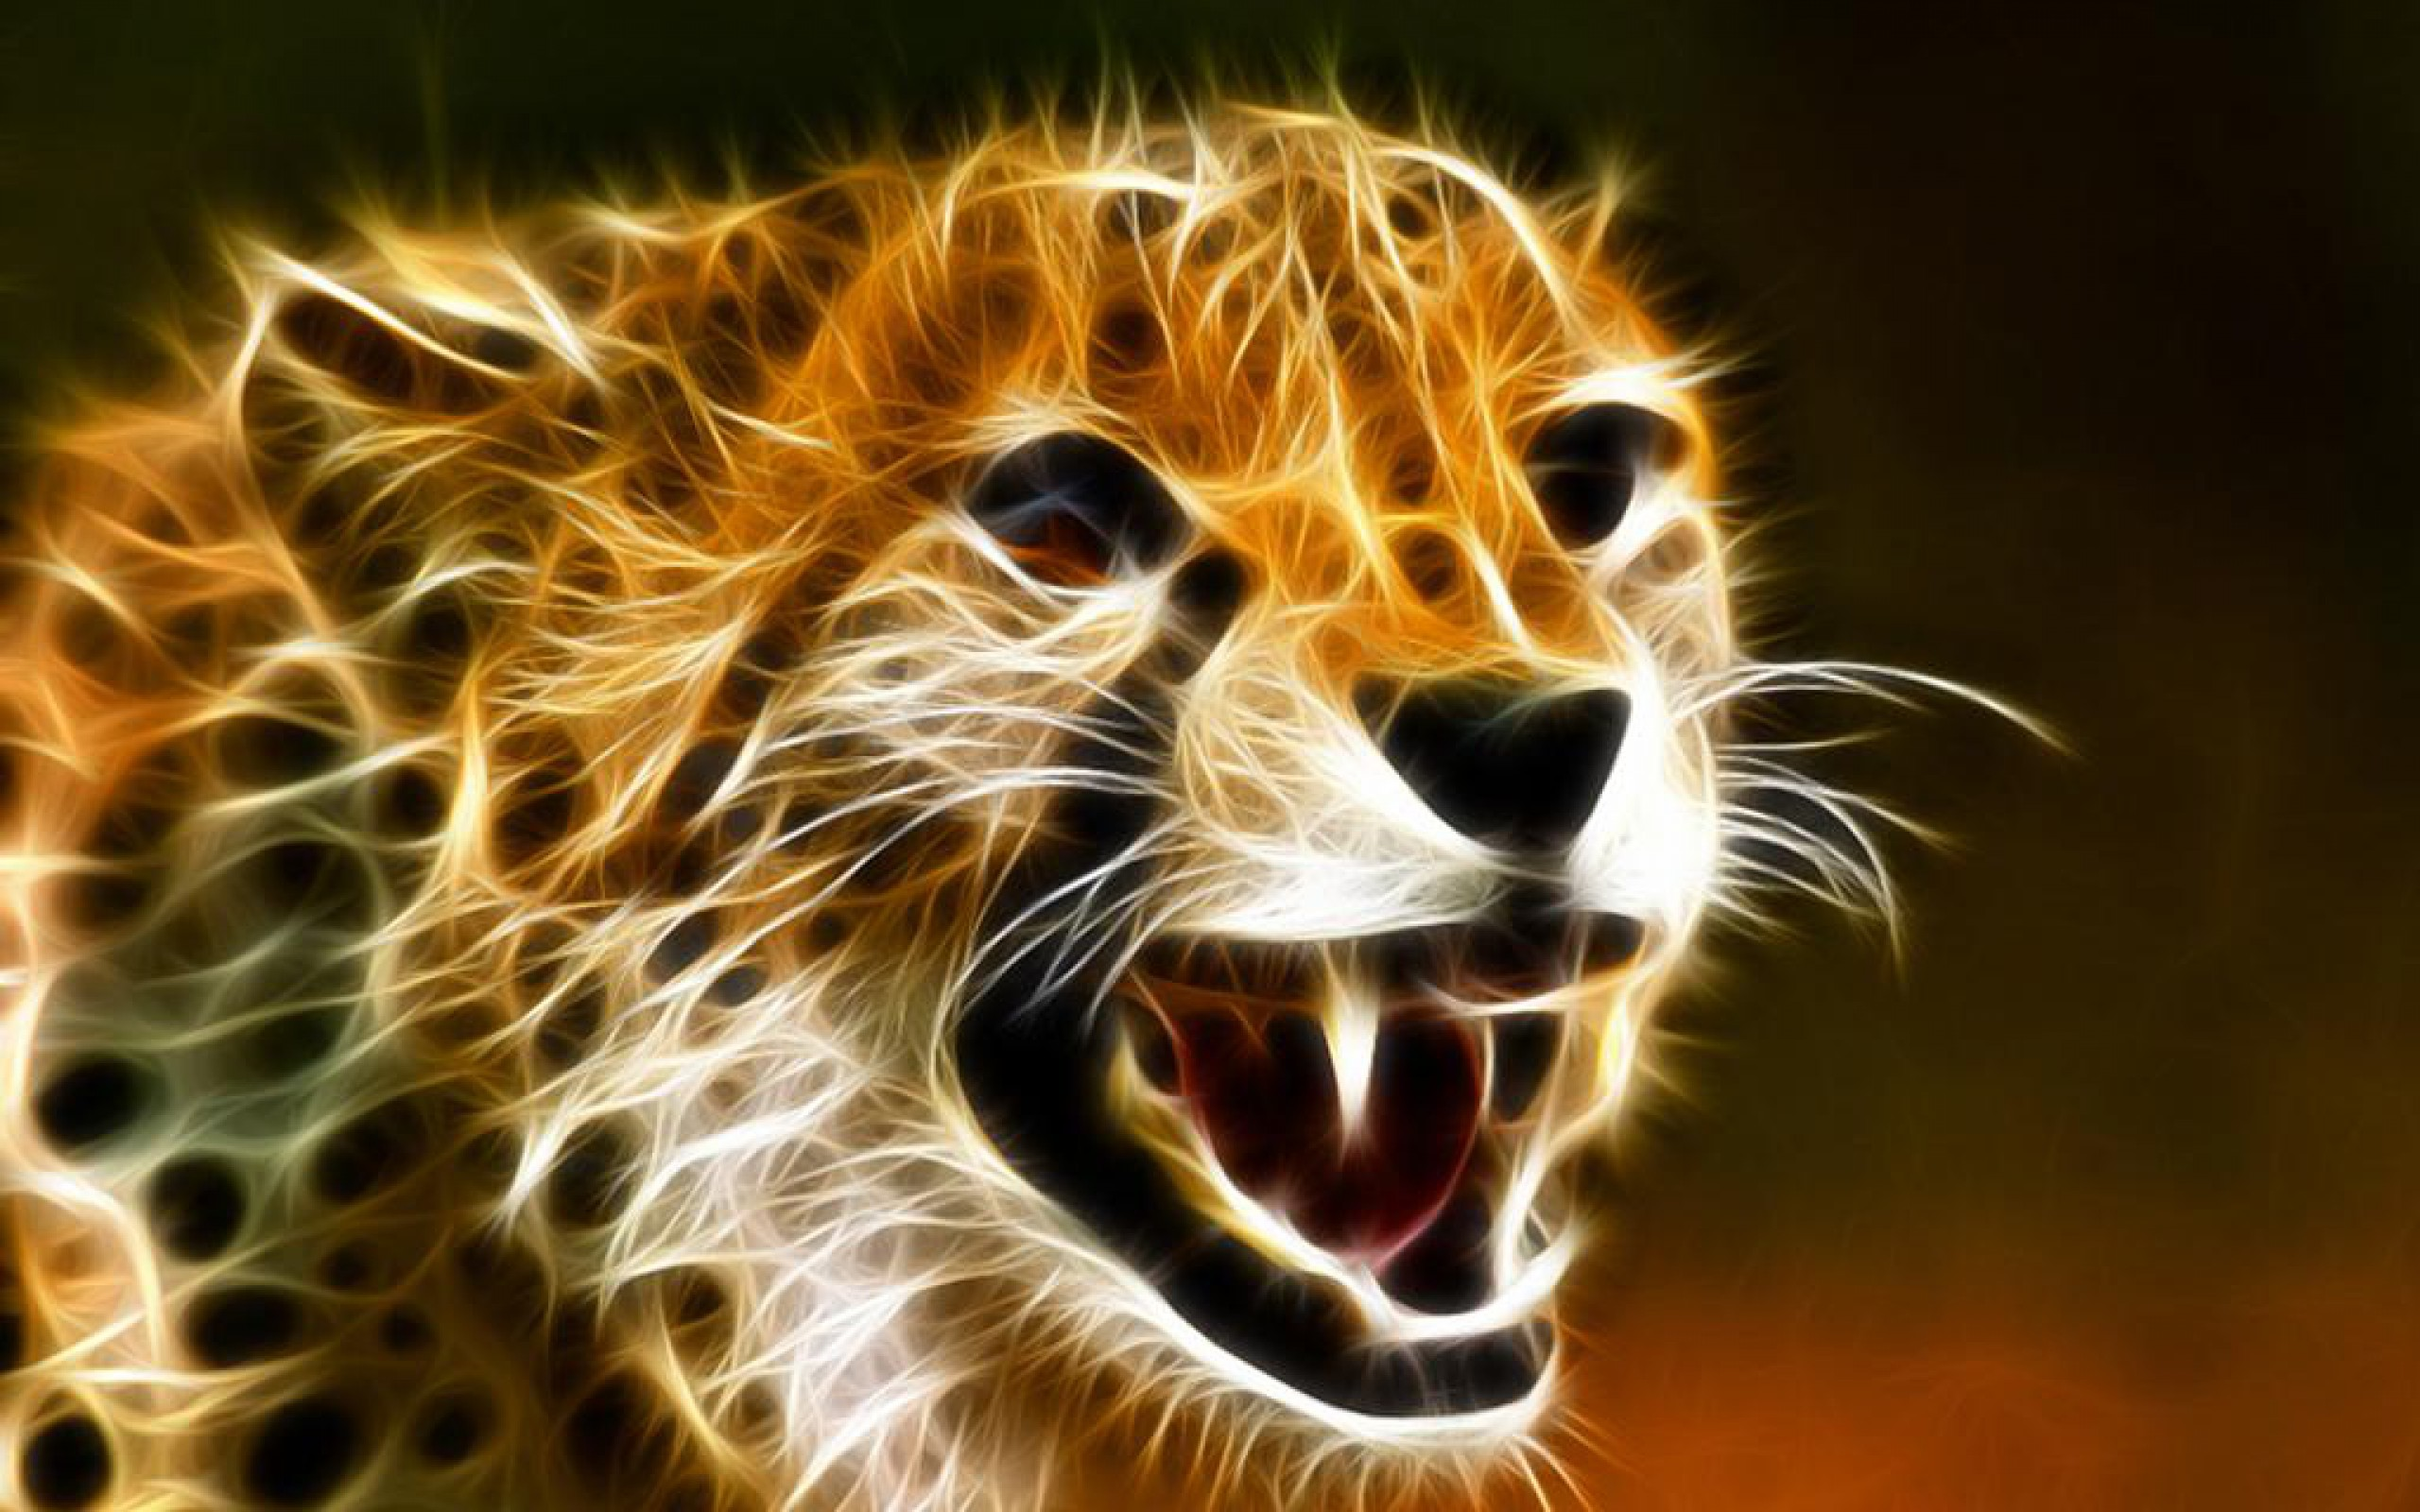 Cheetah wallpapers. Cheetah Wallpapers HD